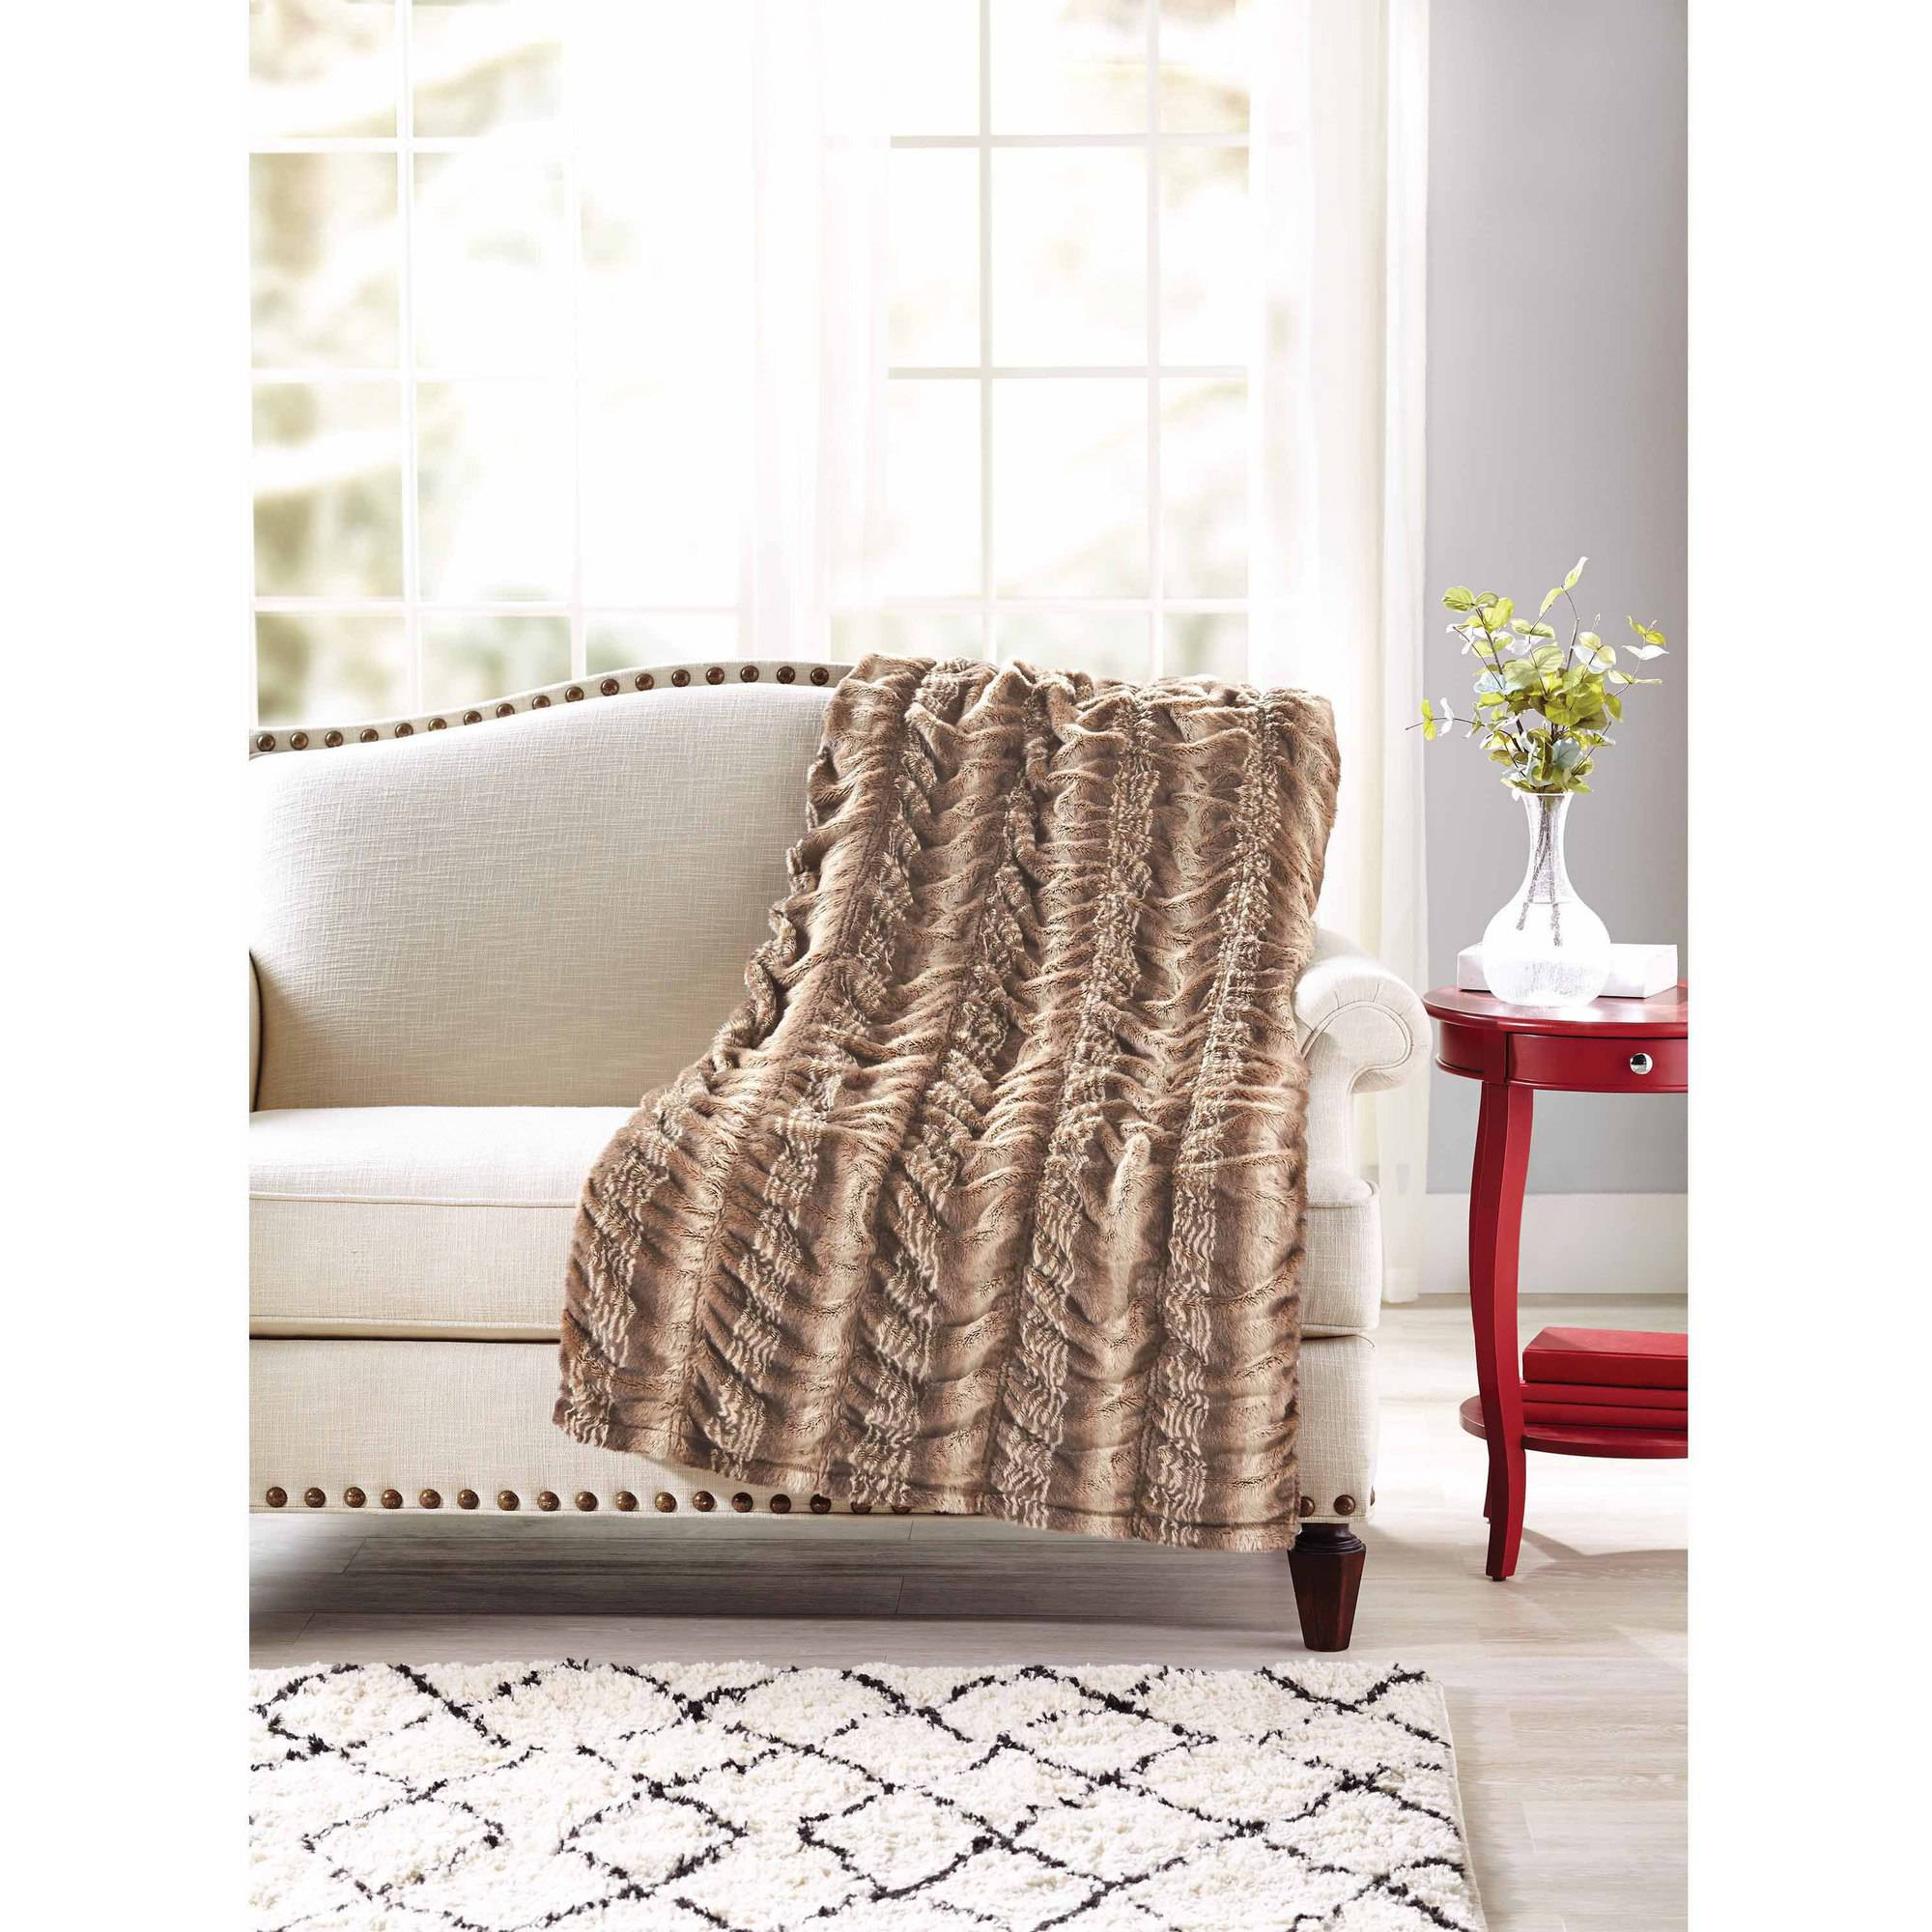 "Better Homes and Gardens 50"" x 60"" Luxe Faux Fur Throw"